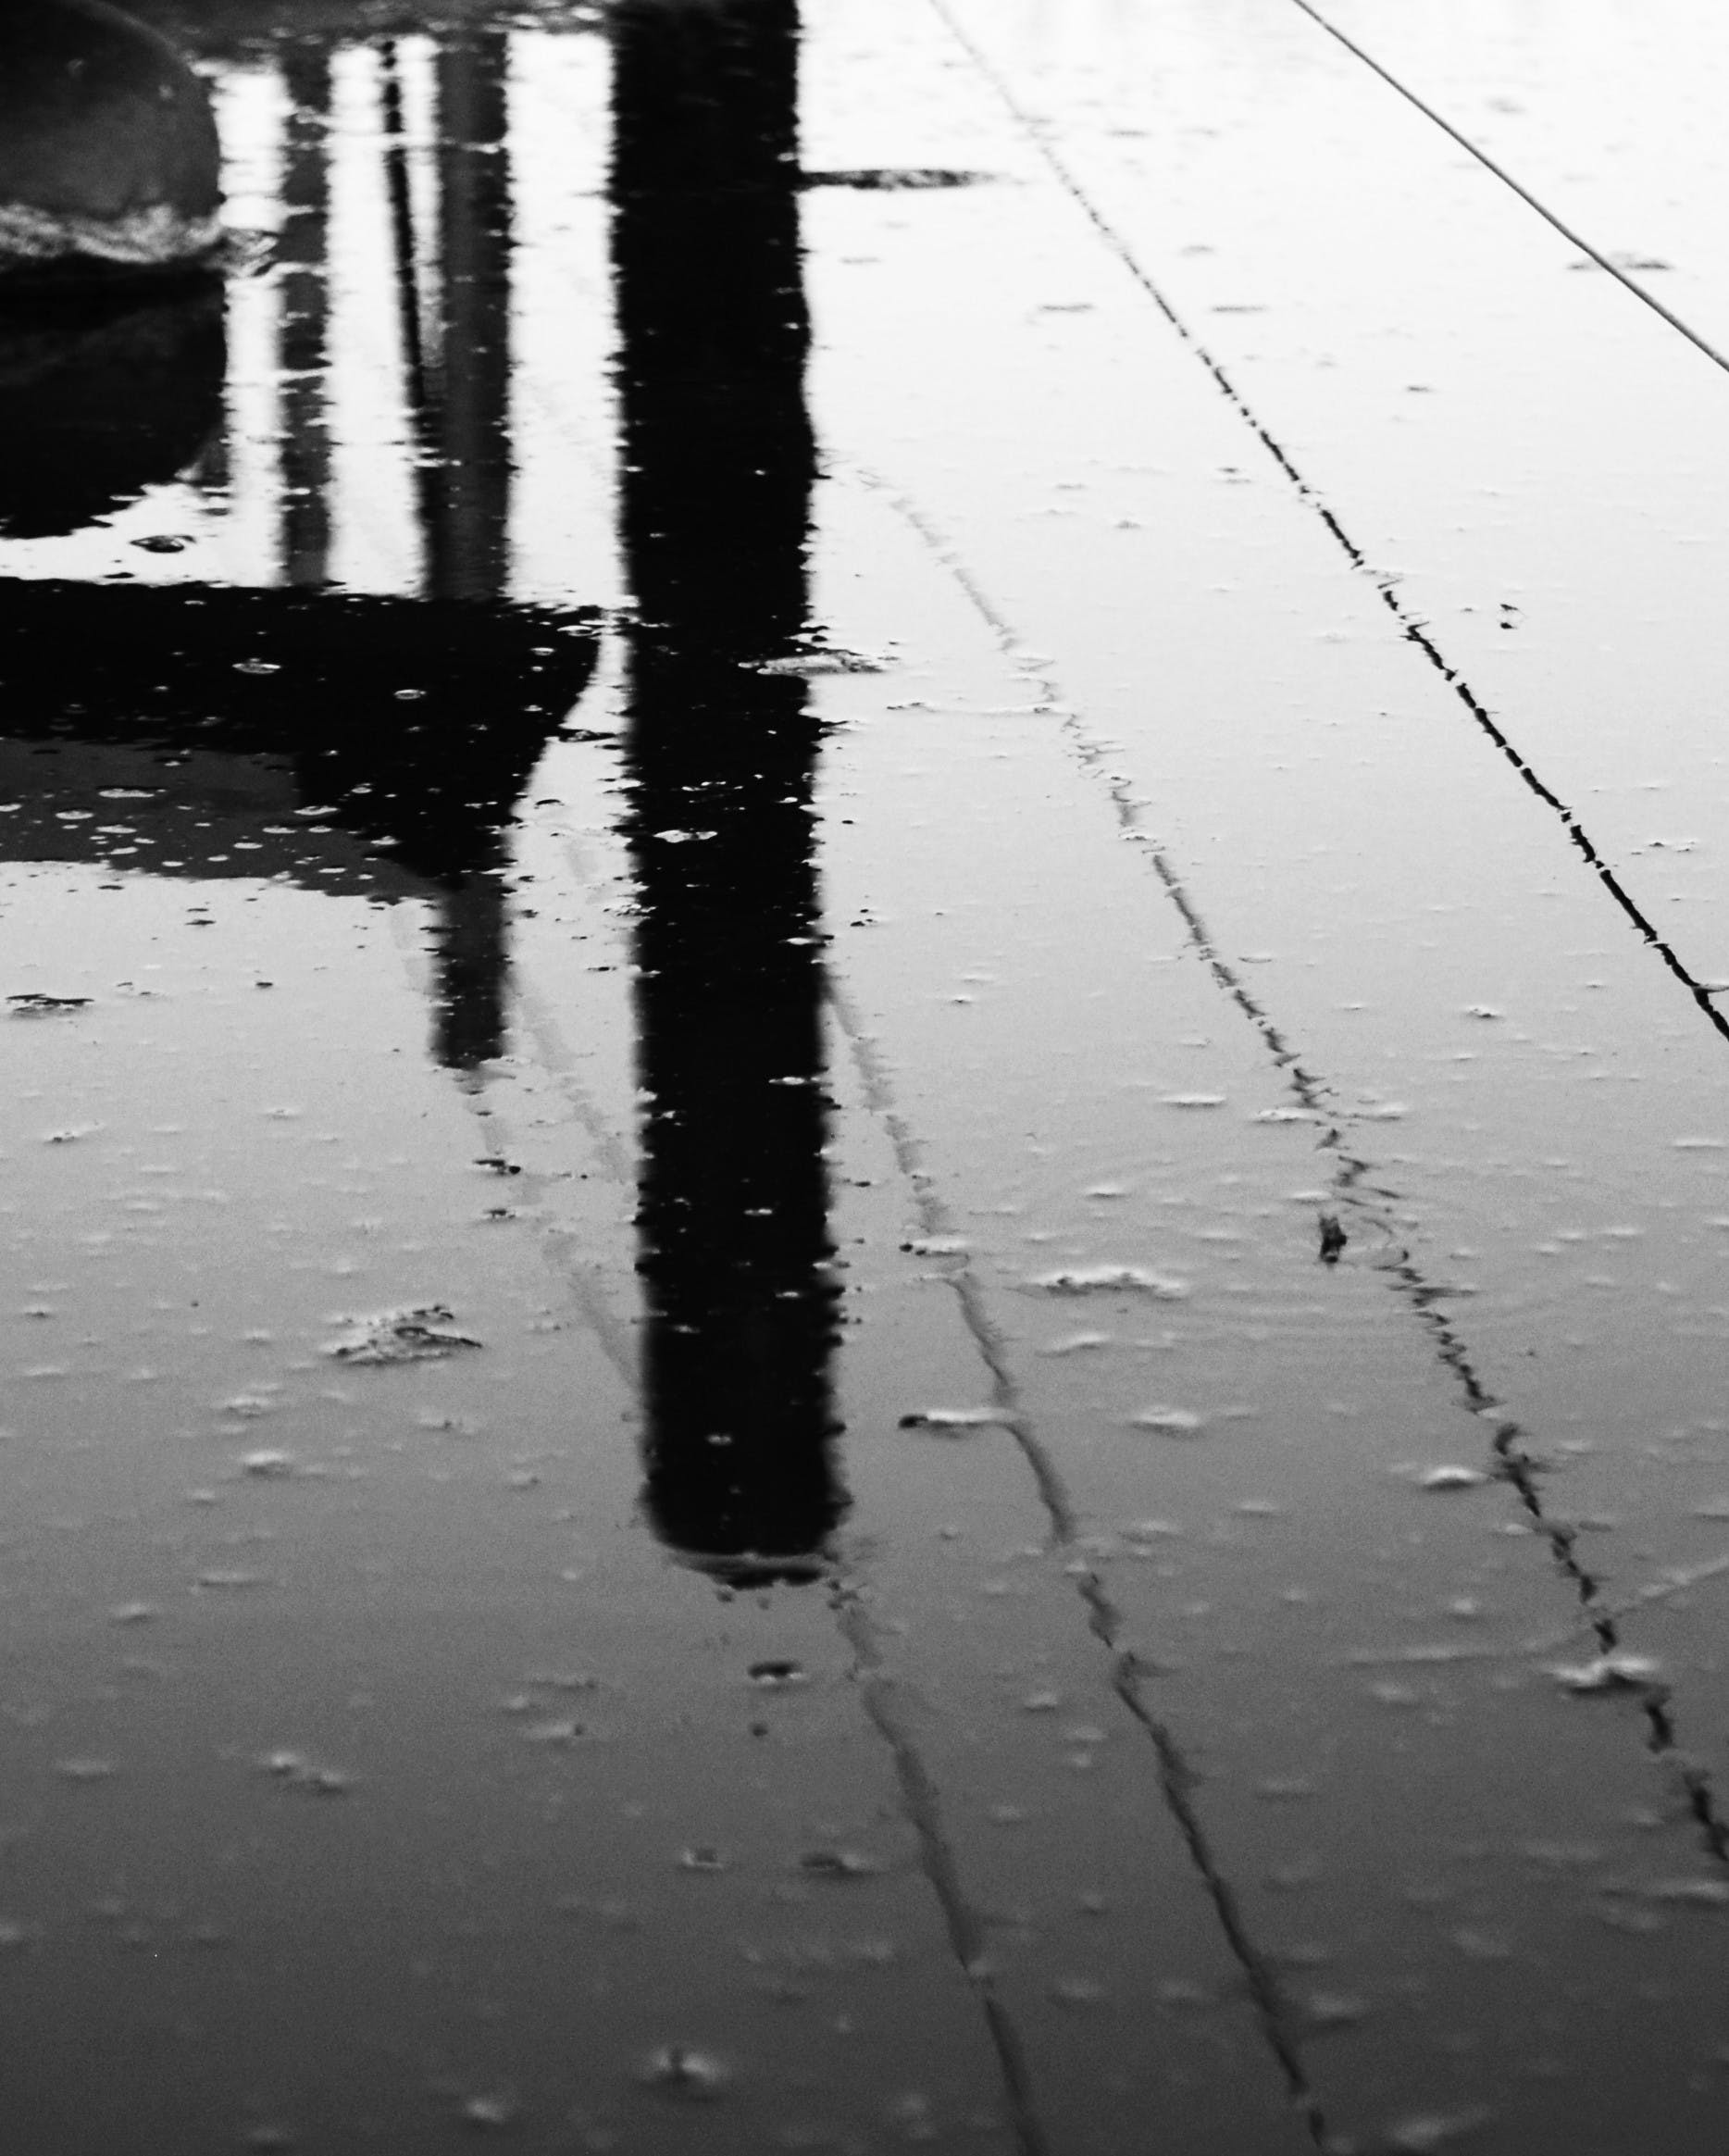 Free stock photo of Abstract Black and White Pond Water Reflection